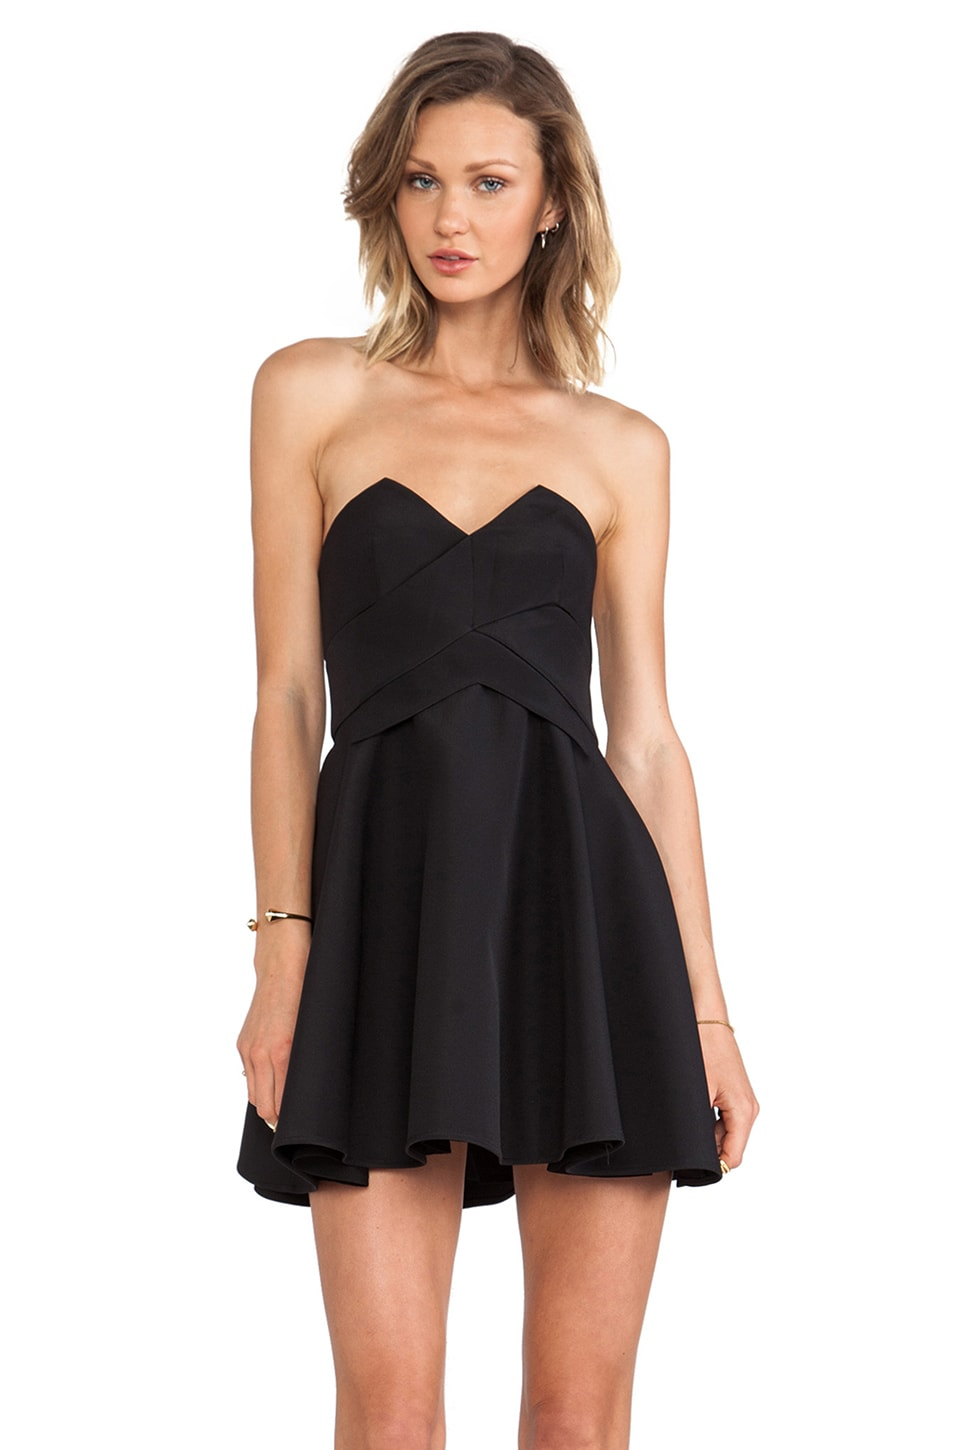 keepsake Three Dimensions Dress in Black